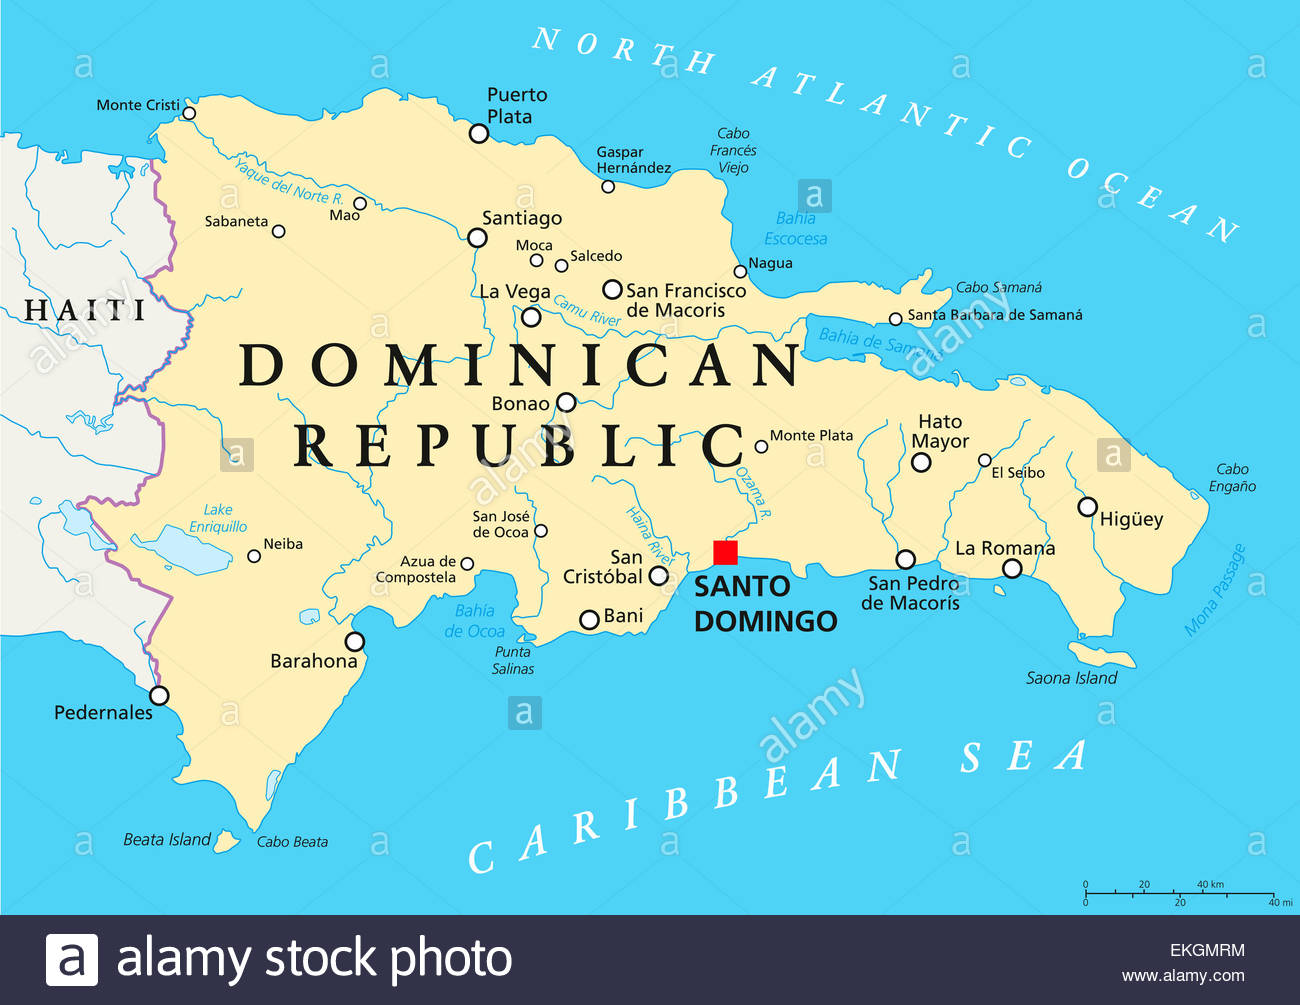 Map Of Dominican Republic From Alamy 5